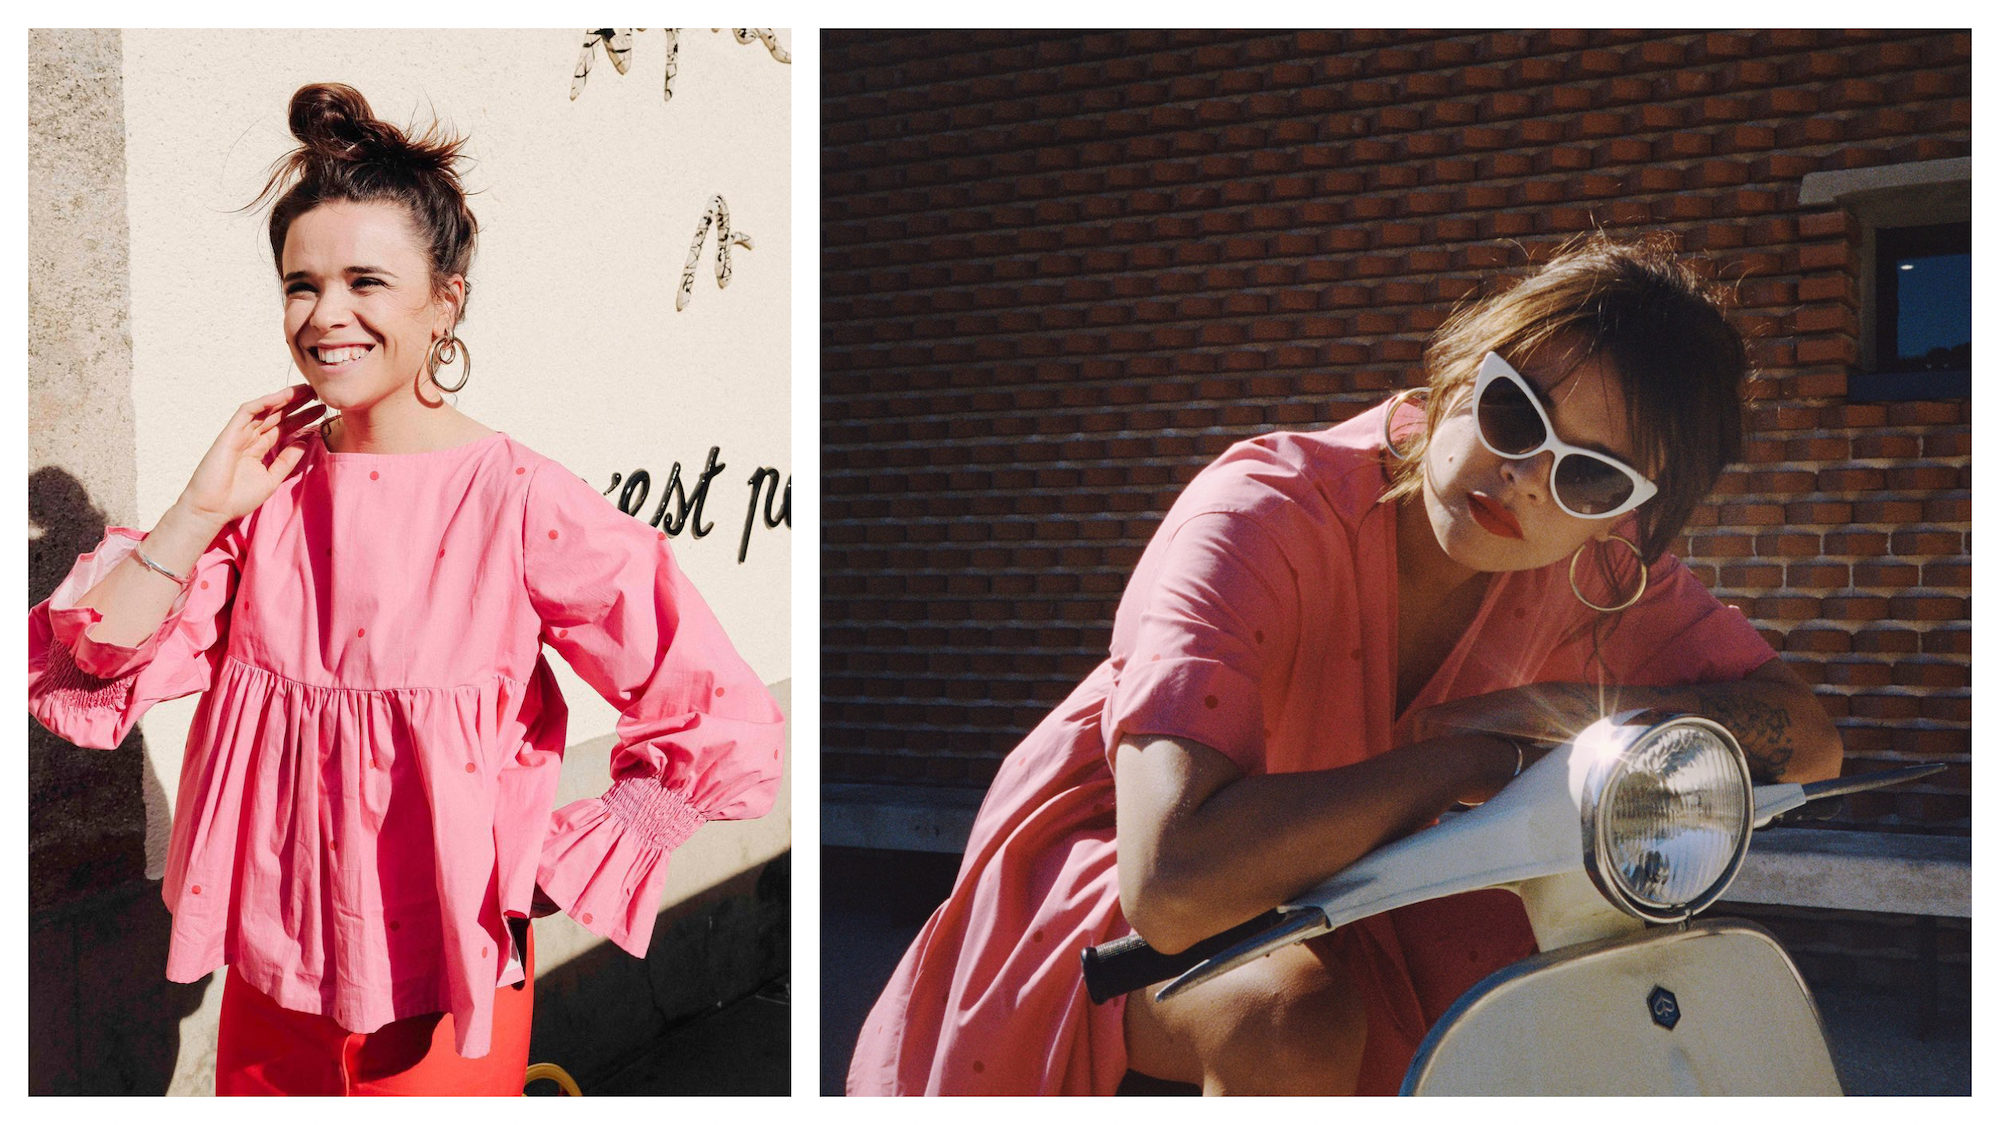 A French brand you have to know to look like a Parisian is Make My Lemonade for its retro pieces like this pink frill cuff blouse (left) and pink cotton dresses teamed with white-rimmed vintage shaped sunglasses (right).